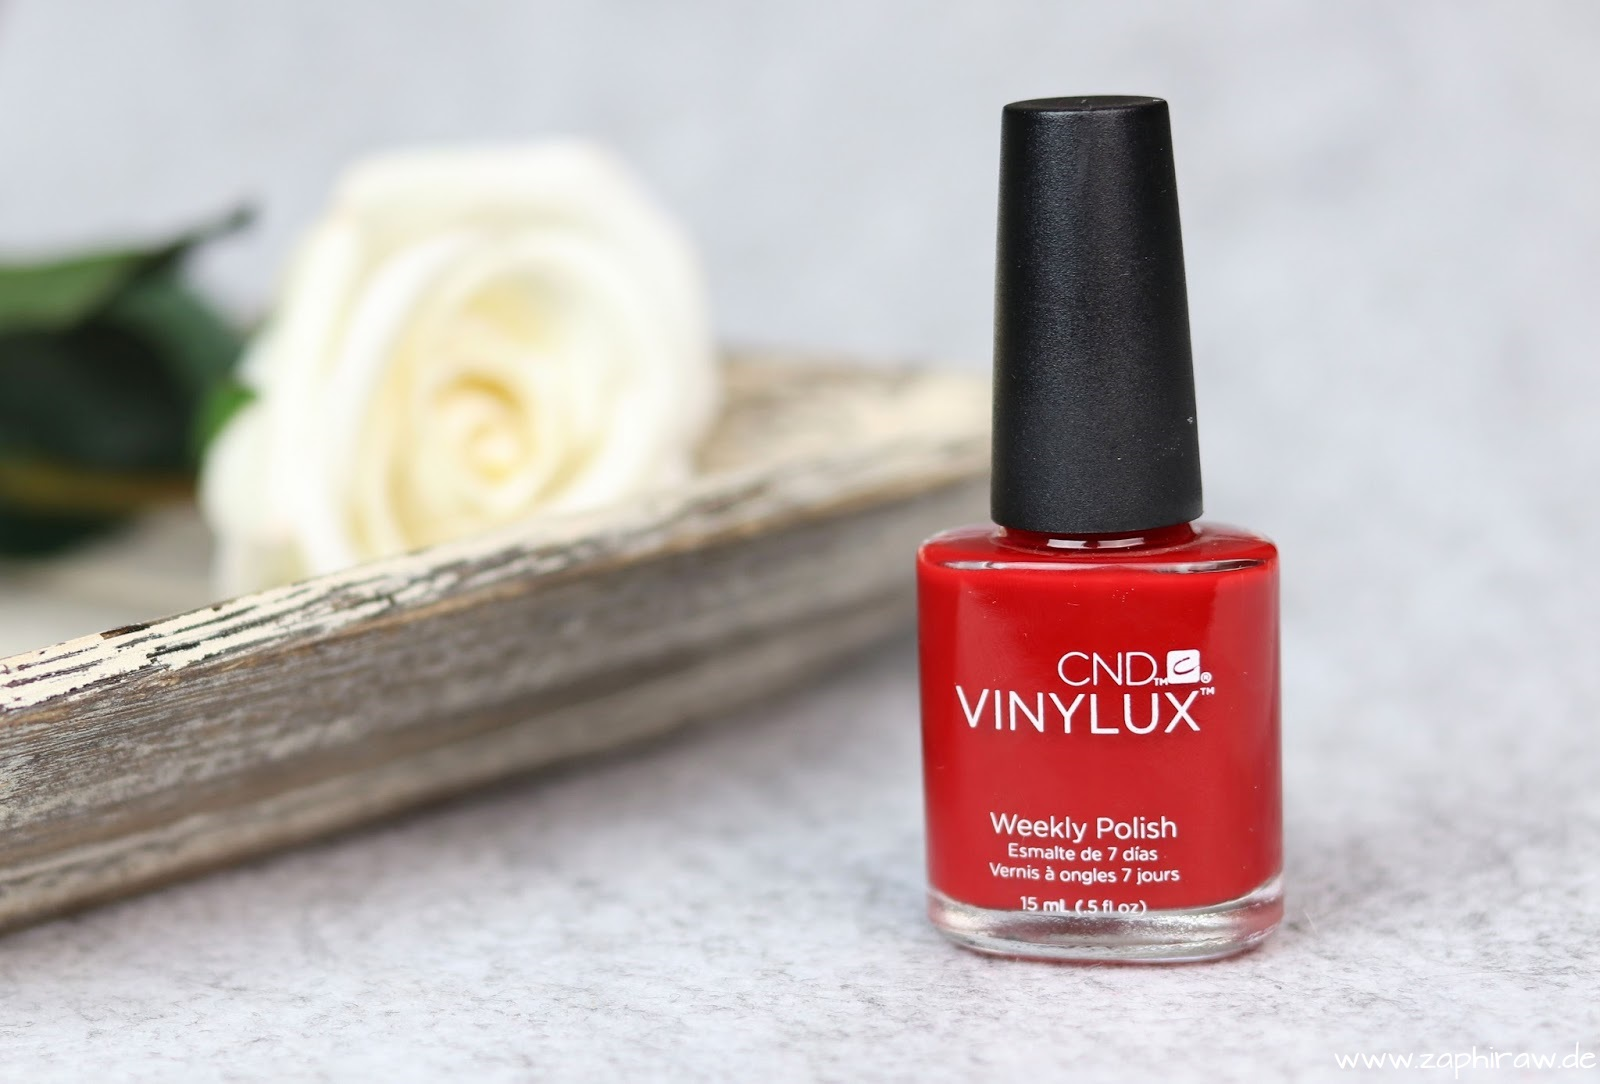 CND, creative play base coat, erfahrung, haltbarkeit, nägel lackieren, nagellack, nagelöl, nagelpflege, nail & culticle care, review, rote nägel, solaroil, top coat, Vinylux System, Weekly Polish, wildfire,